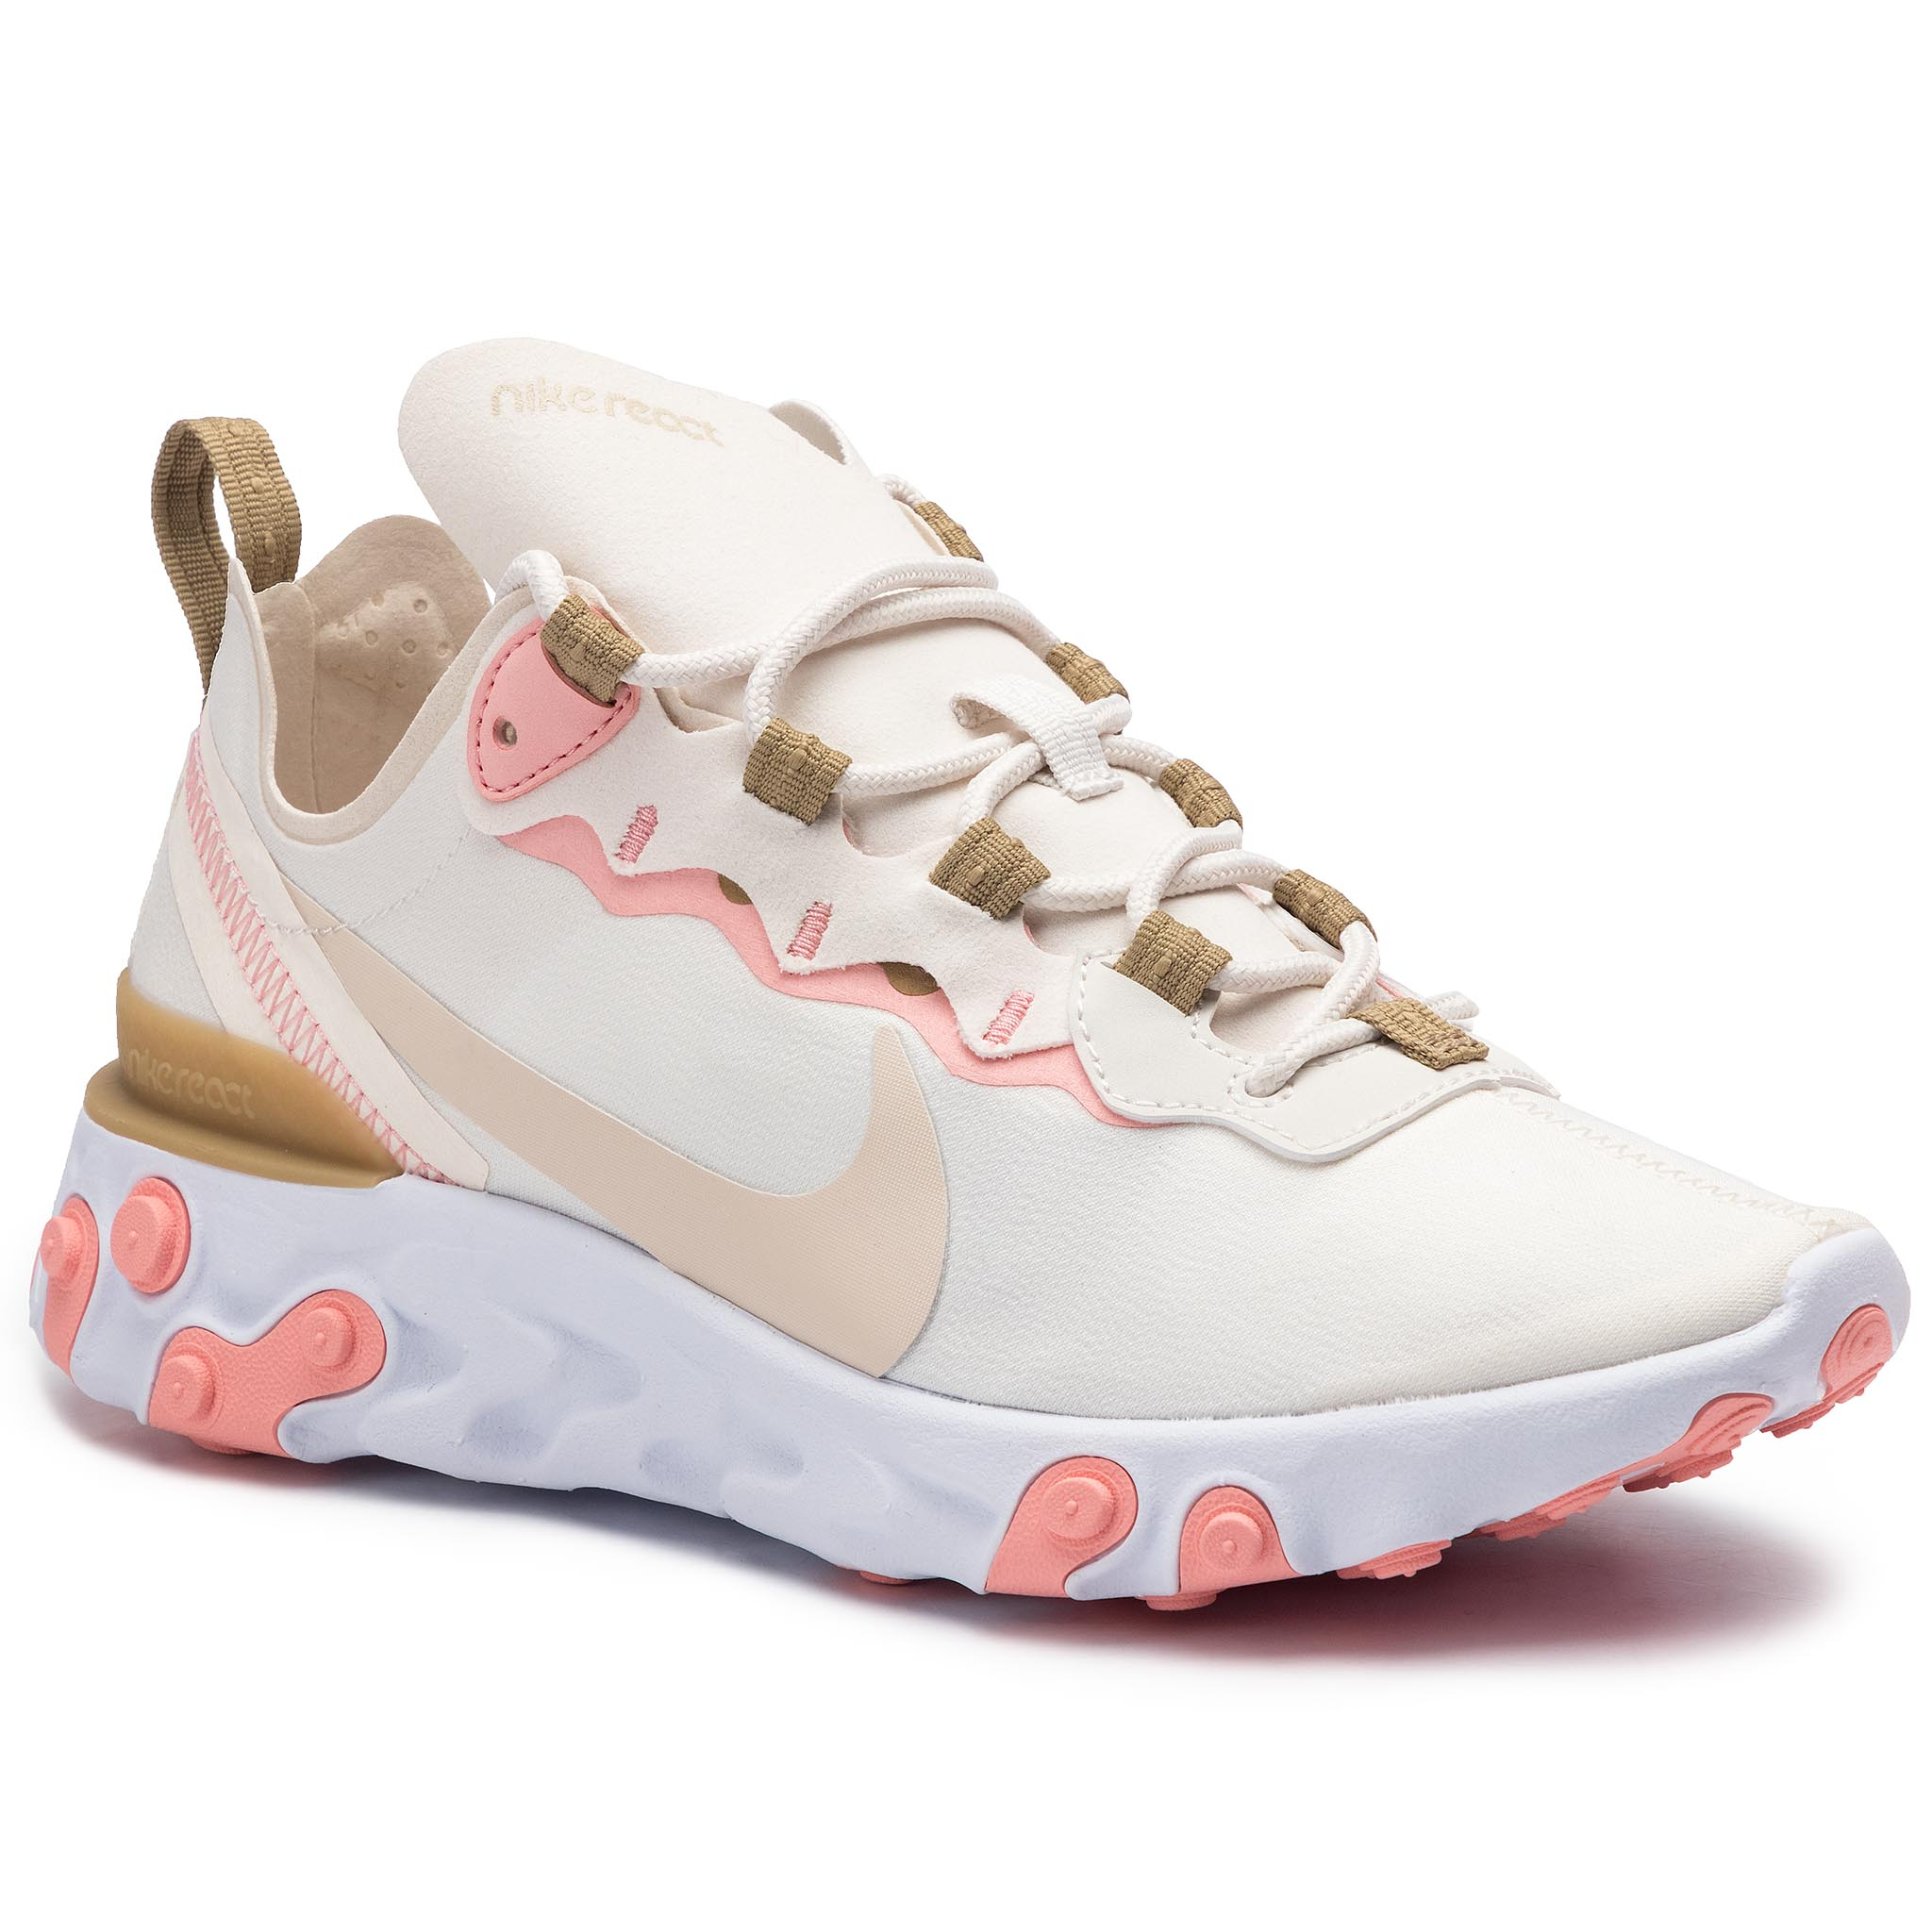 Pantofi NIKE - React Element 55 BQ2728 007 Phantom/Lt Orewood Brn